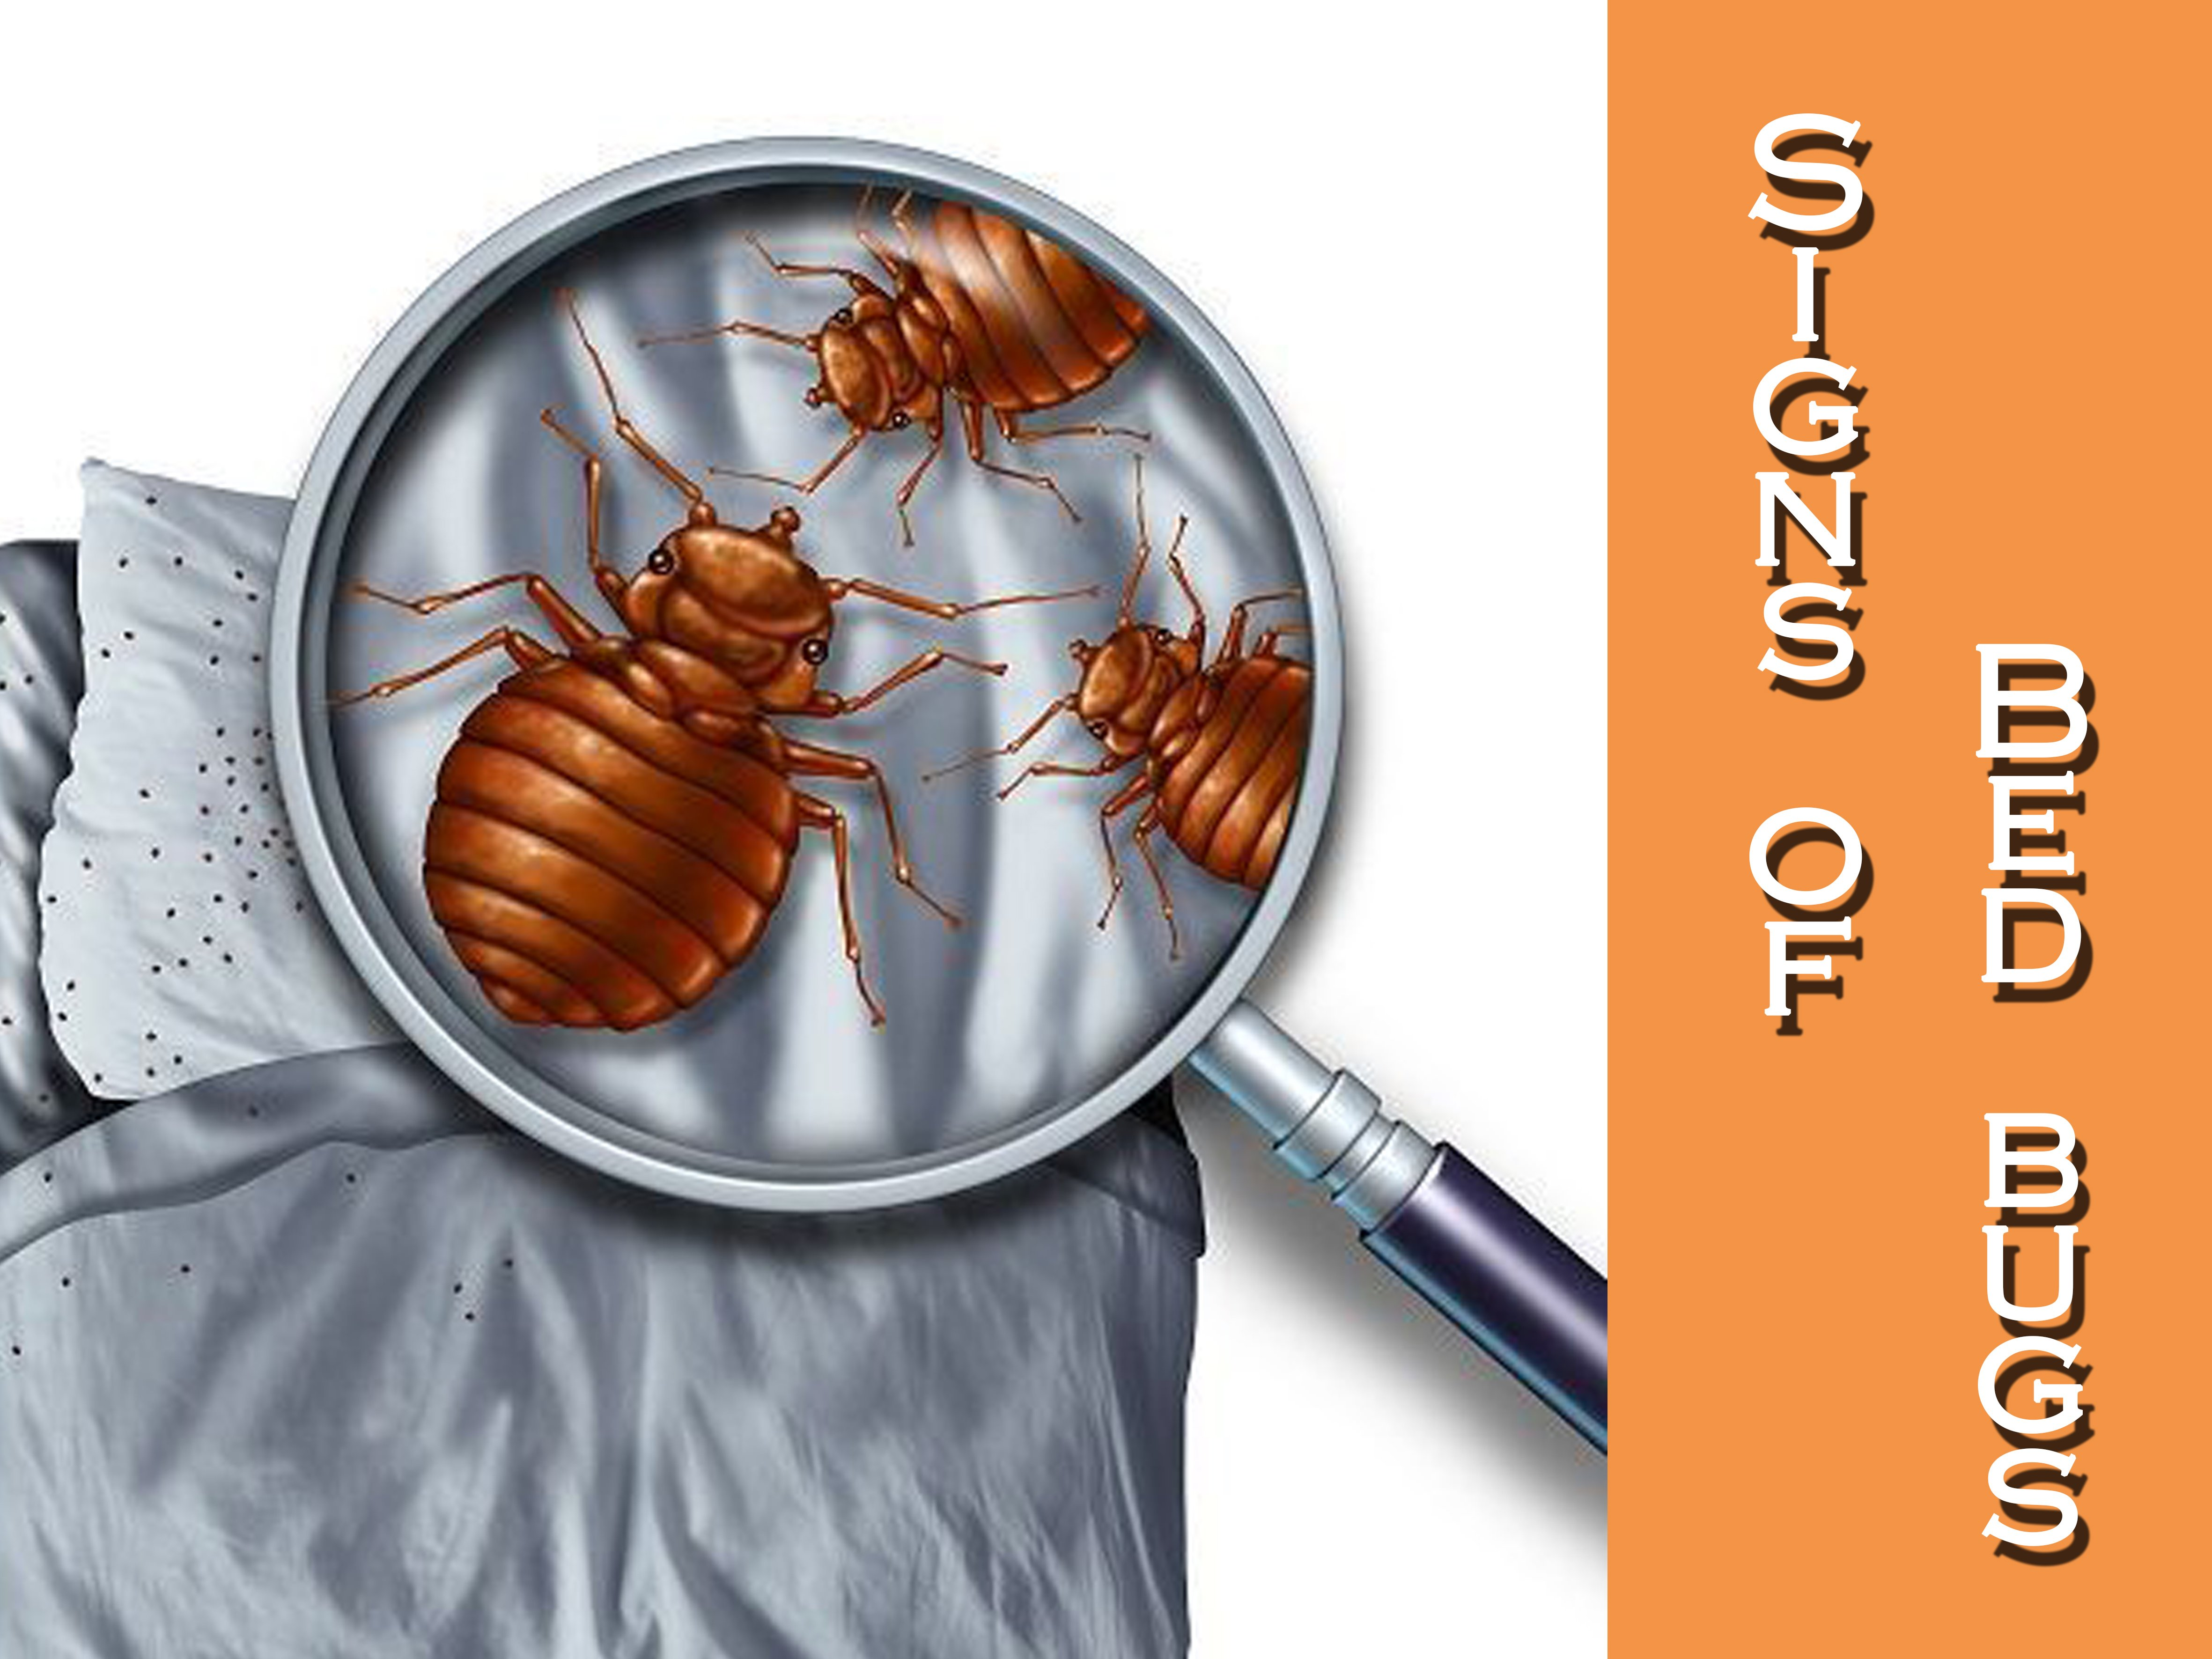 Tremendous 9 Bed Bug Signs Symptoms In Your Home Pest Wiki Home Interior And Landscaping Mentranervesignezvosmurscom